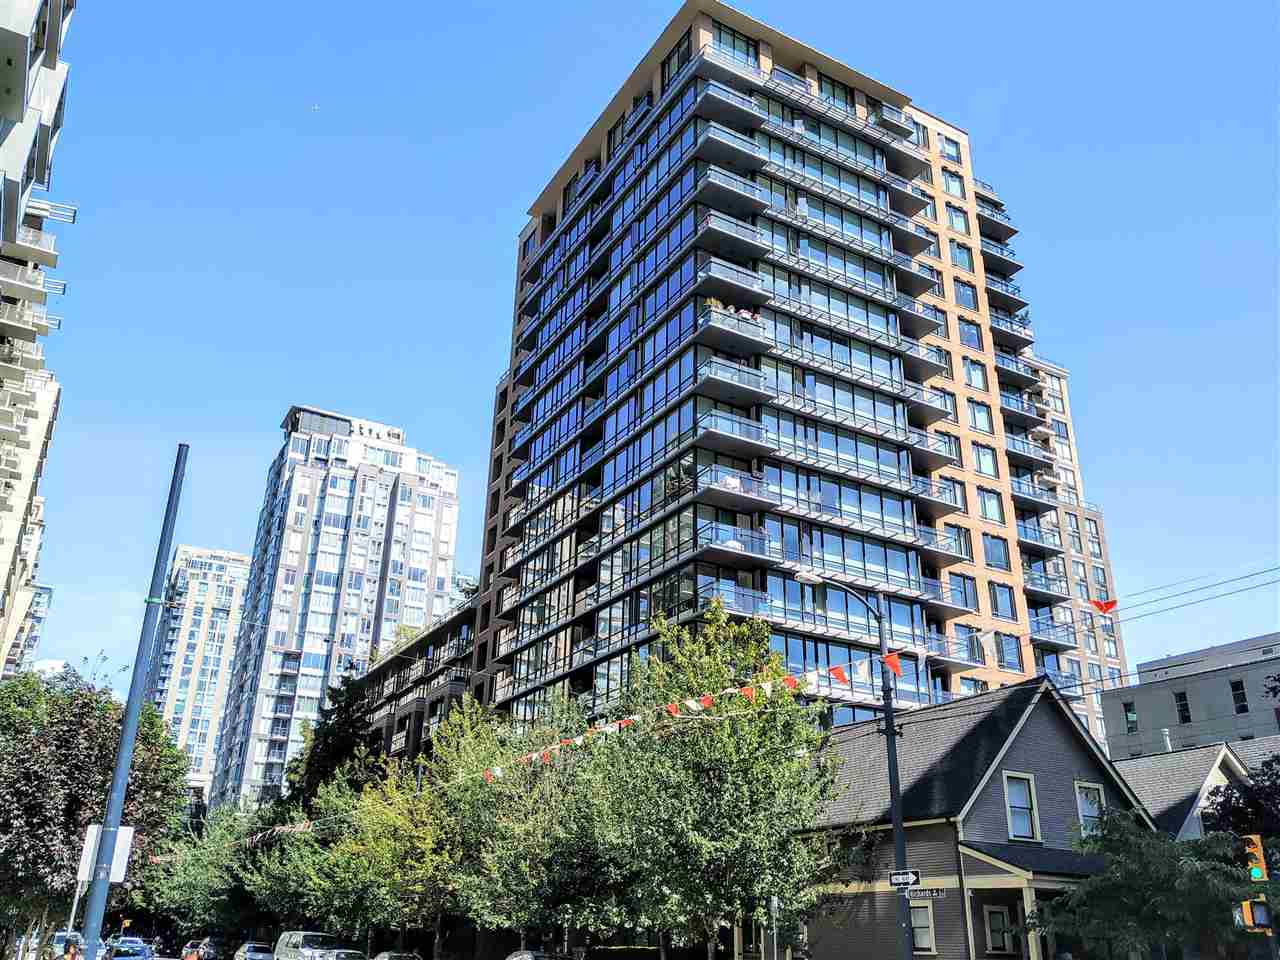 808 1088 RICHARDS STREET - Yaletown Apartment/Condo for sale, 1 Bedroom (R2483779)